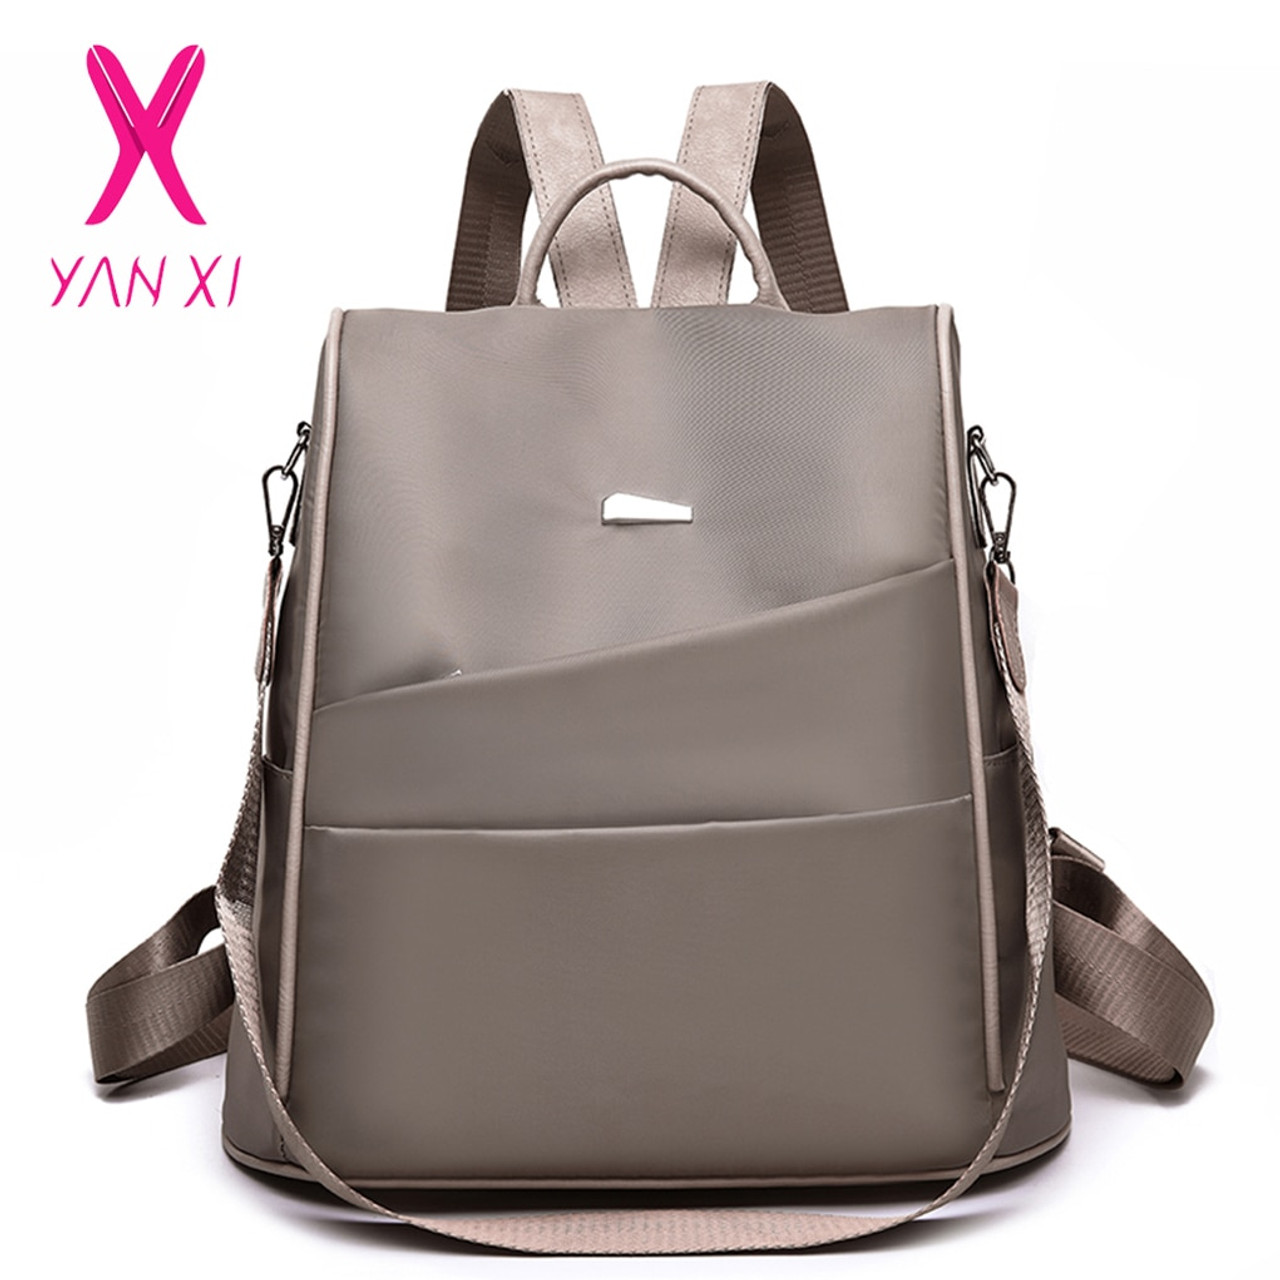 Waterproof Oxford//PU Leather Small Backpack Purse for Women School Bag Girls